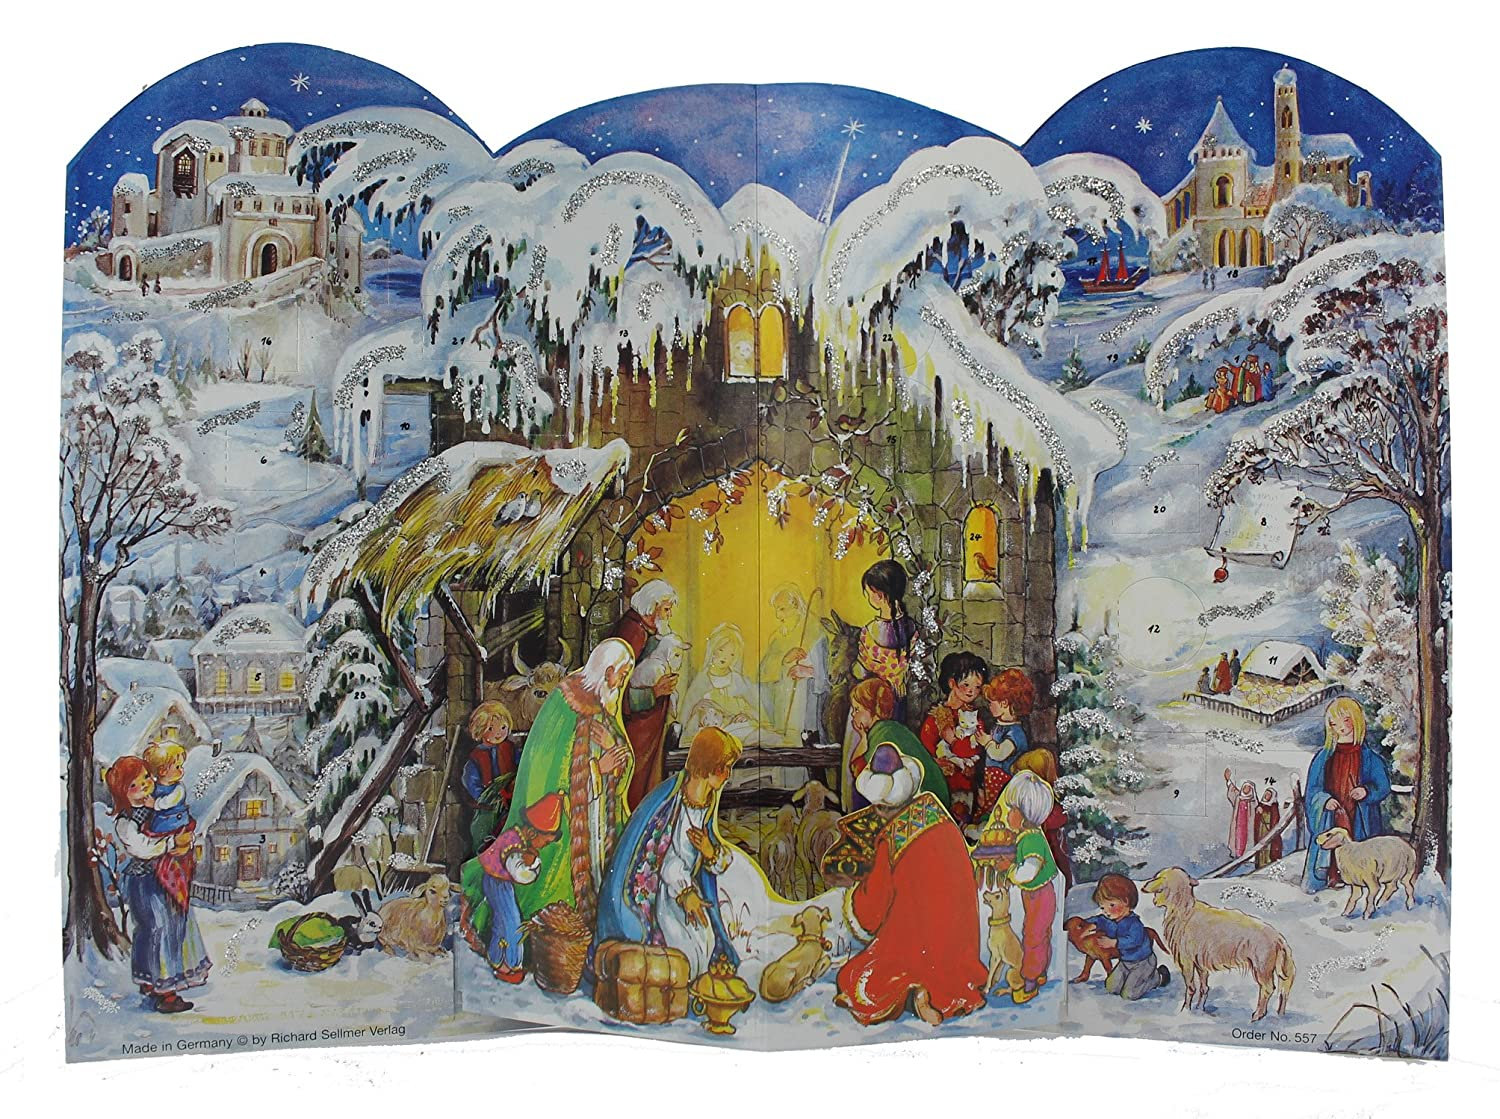 Sellmer 3-D Nativity Scene Advent Calendar Richard Sellmer Verlag 557